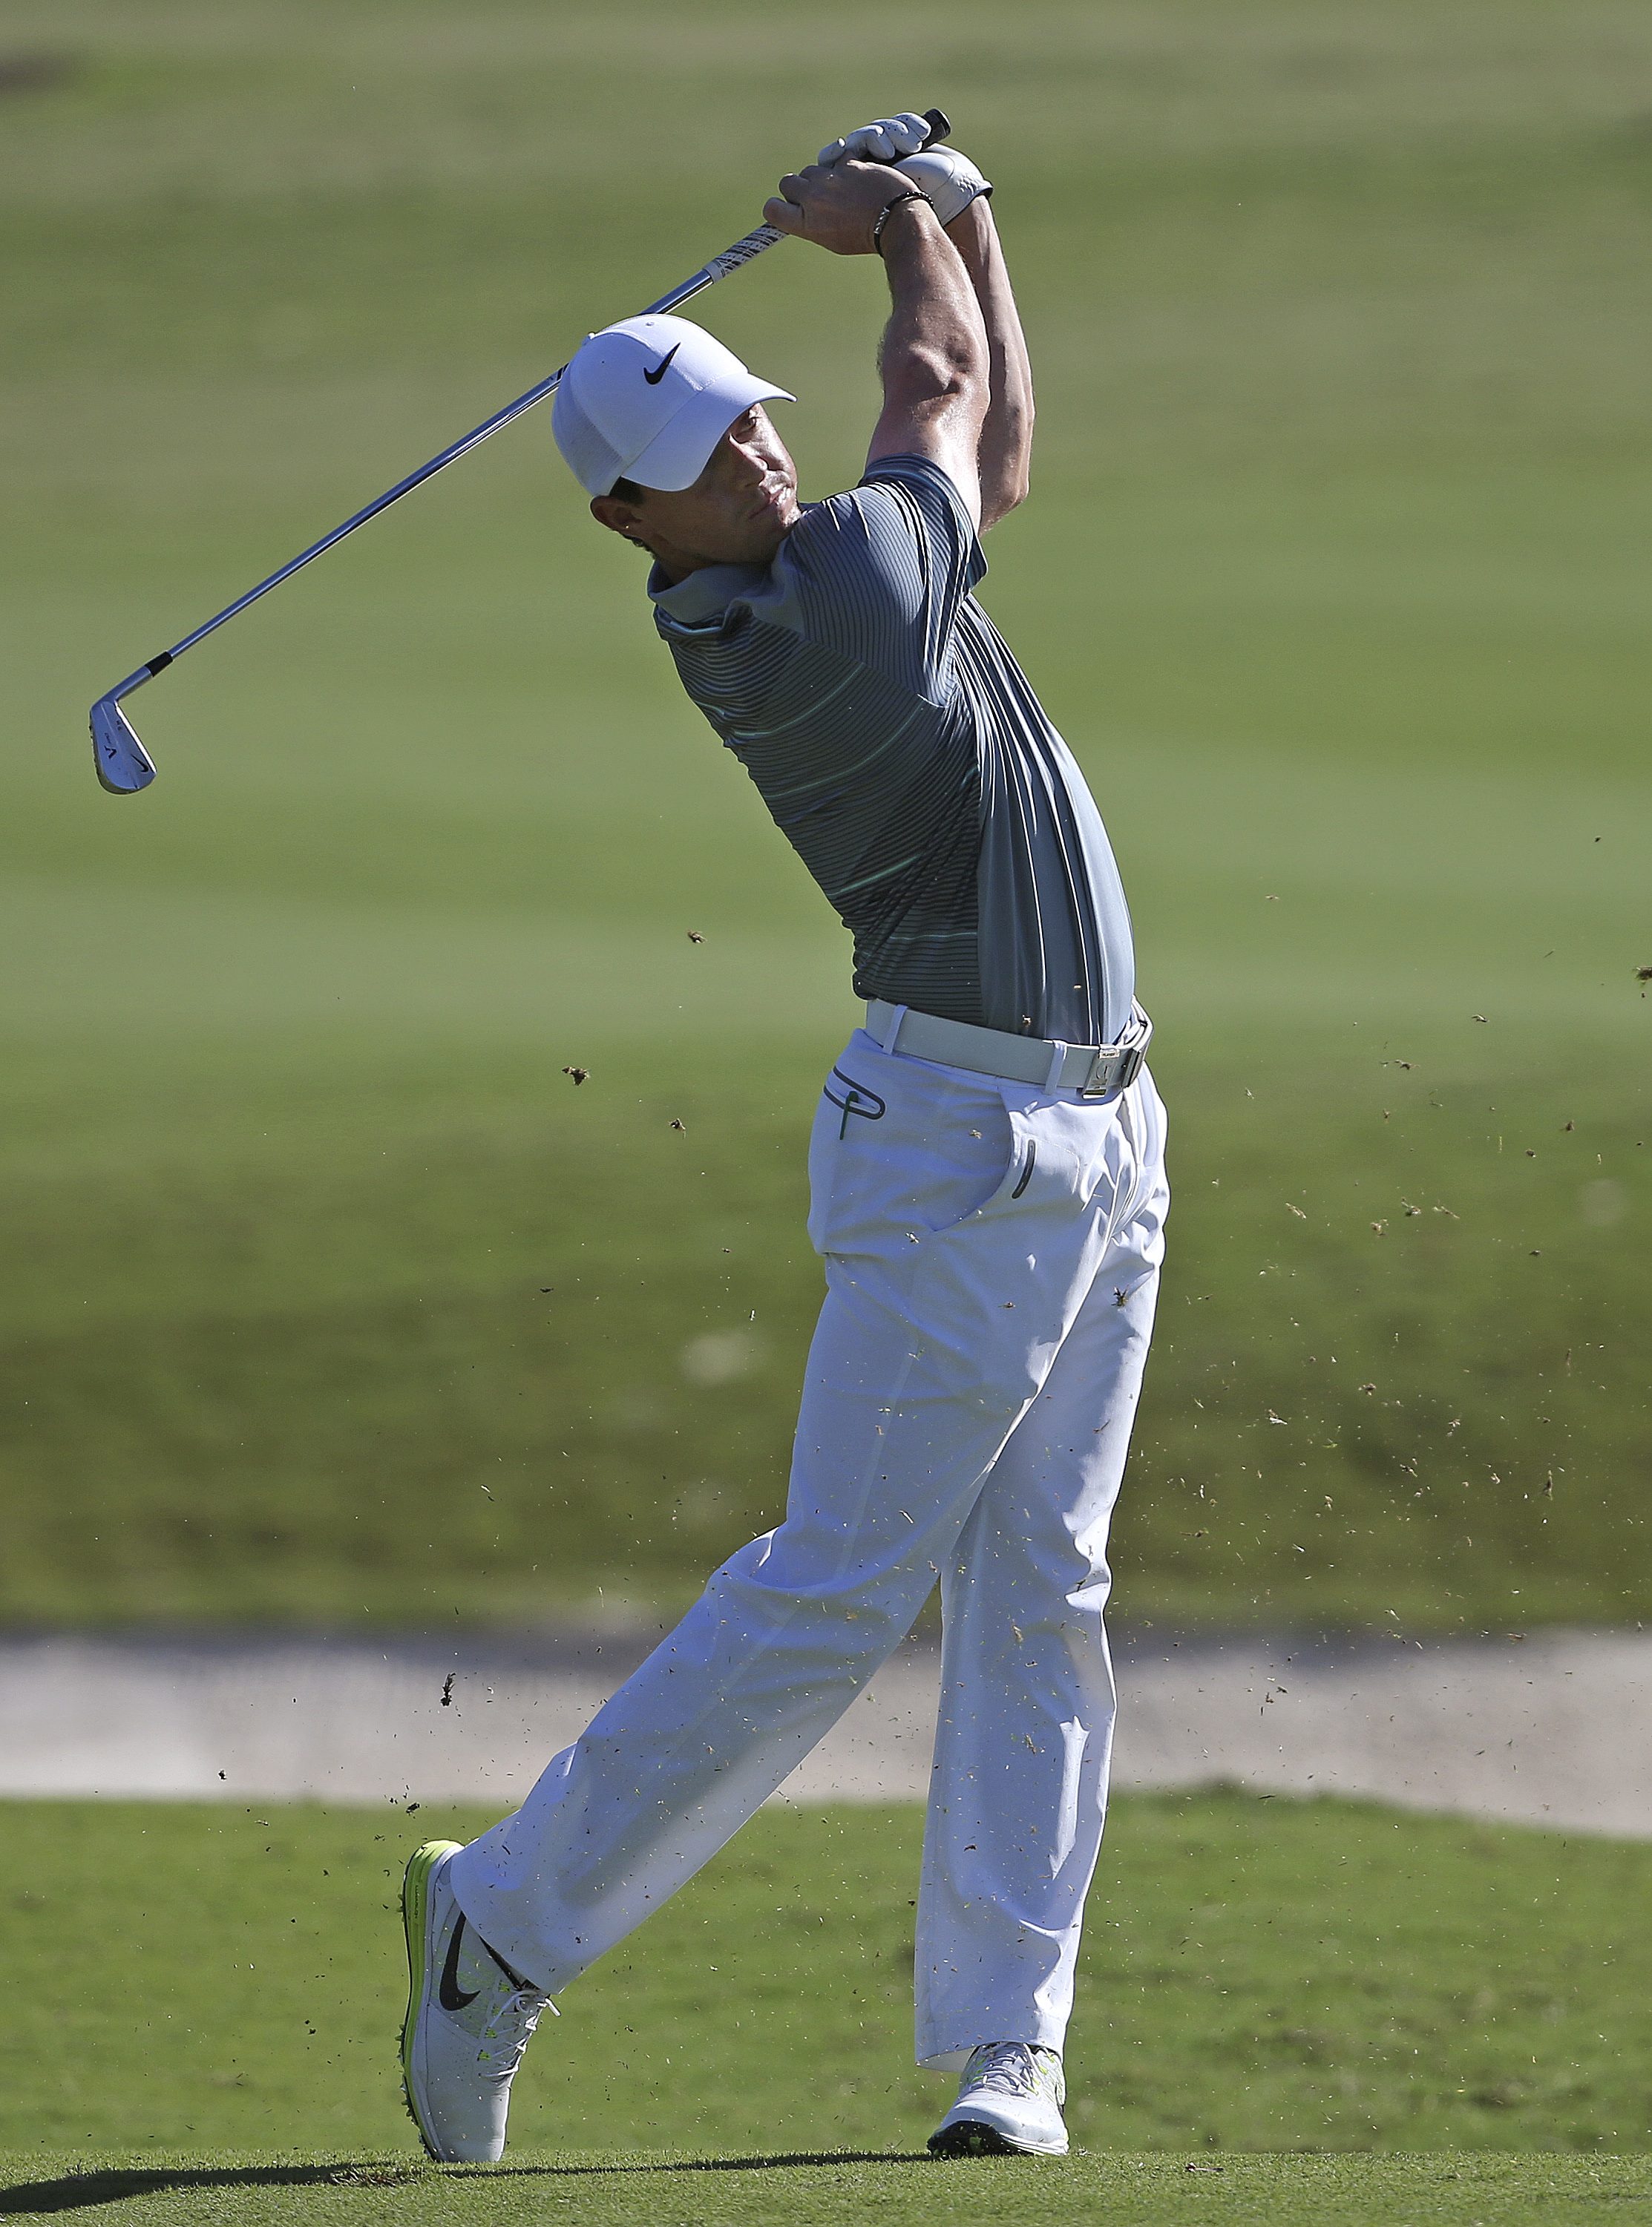 Northern Ireland's Rory McIlroy plays a shot on the 18th hole during the second round of the Australian Open Golf championship in Sydney, Friday, Nov. 28, 2014. (AP Photo/Rick